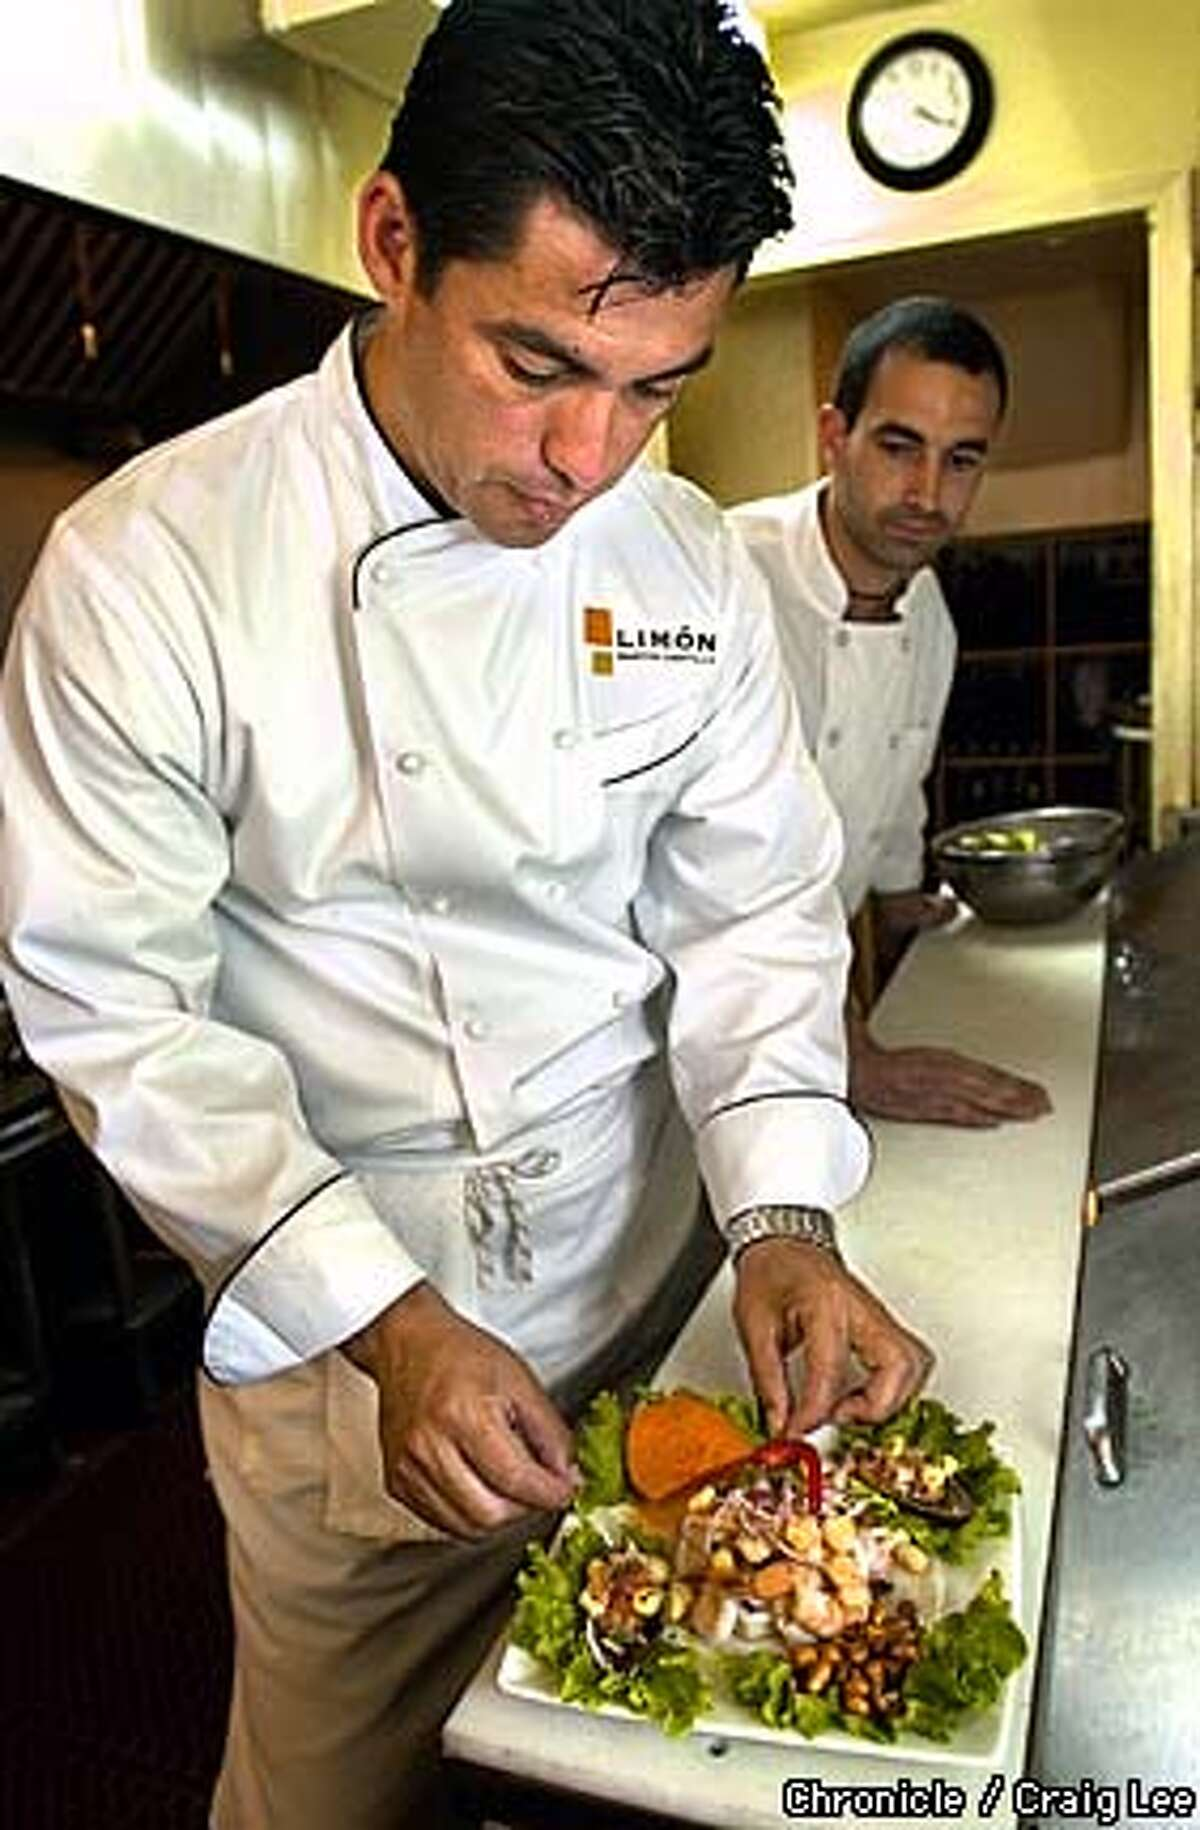 Latino restaurants are doing new types of ceviche that home cooks can do too. Chef Martin Castillo at Limon restaurant, 3316 17th Street. His recipes are Ceviche Limon and Tiradito de Pescado. Photo of Chef Martin Castillo making Ceviche Limon, his Sioux Chef, Eduardo Gutierrez, is at the right observing. Photo by Craig Lee/San Francisco Chronicle